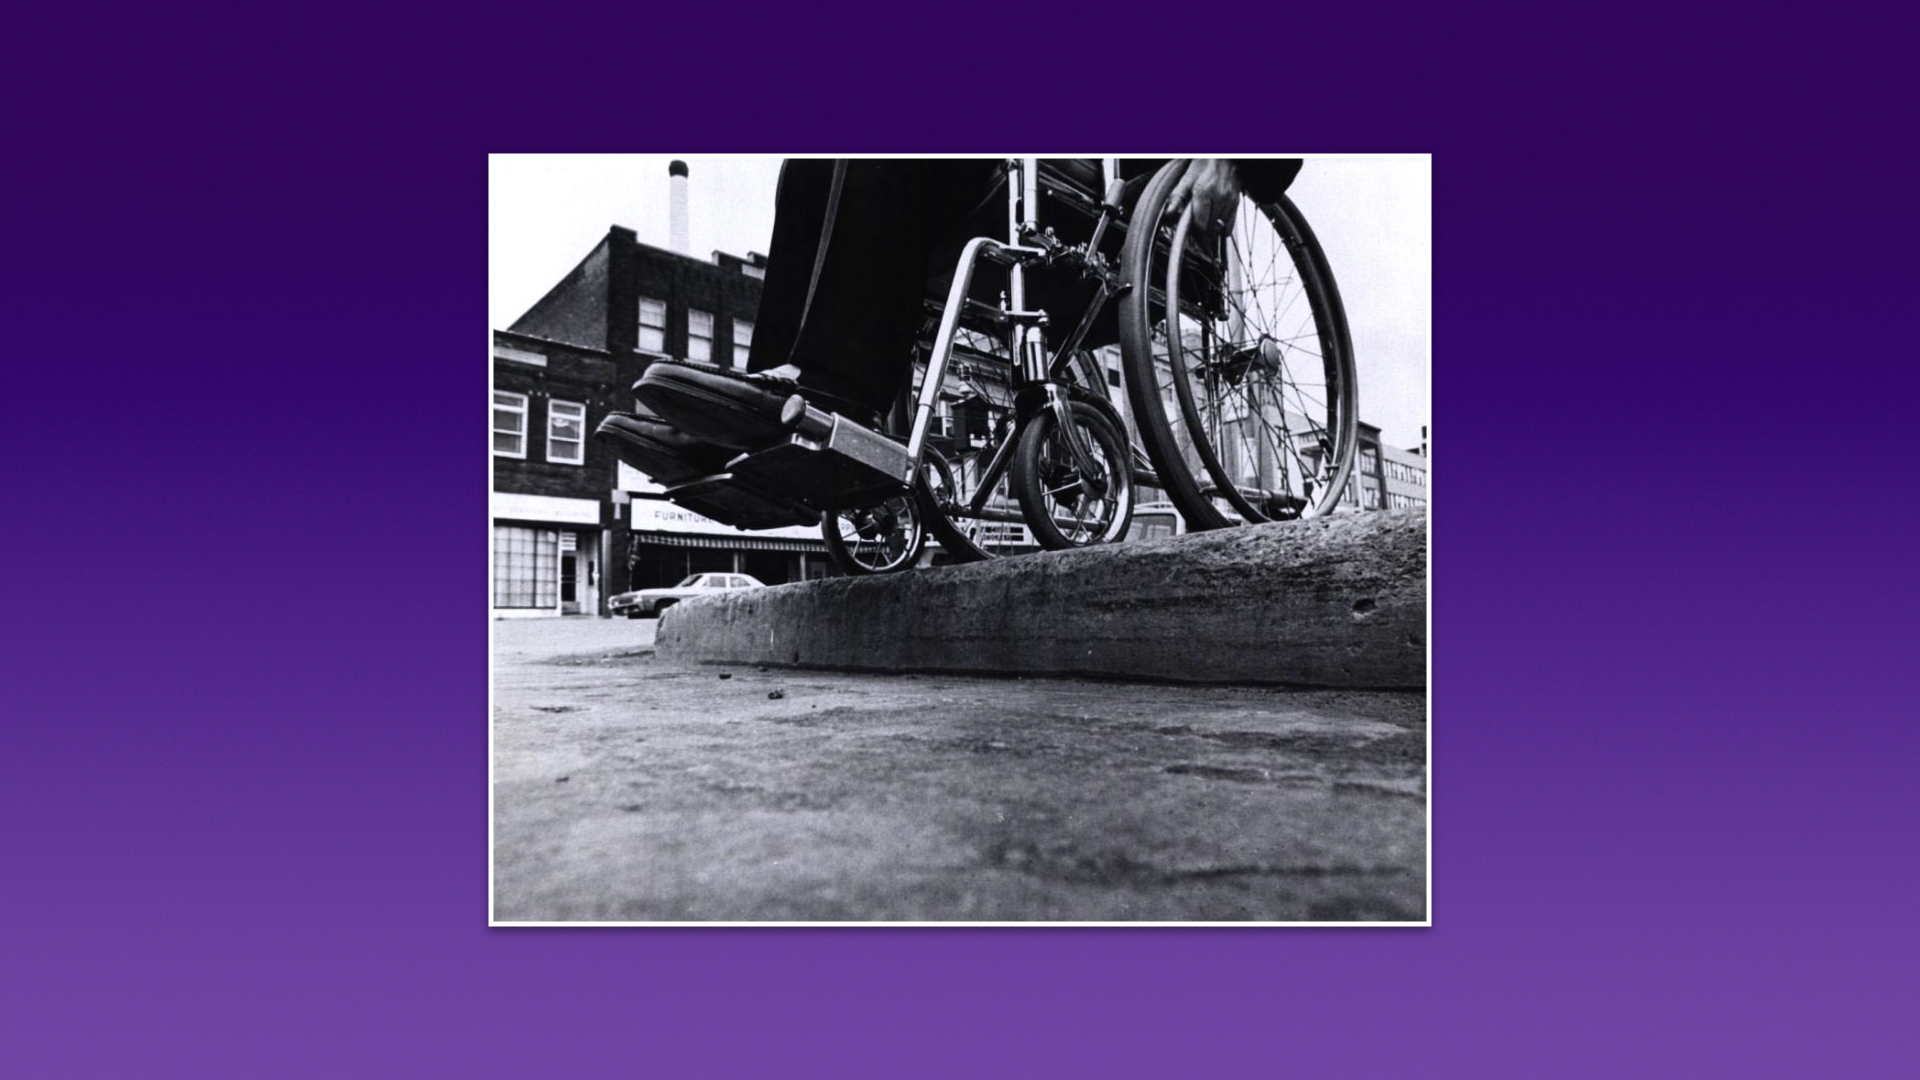 A black and white photo of a wheelchair standing at the edge of a raised curb.